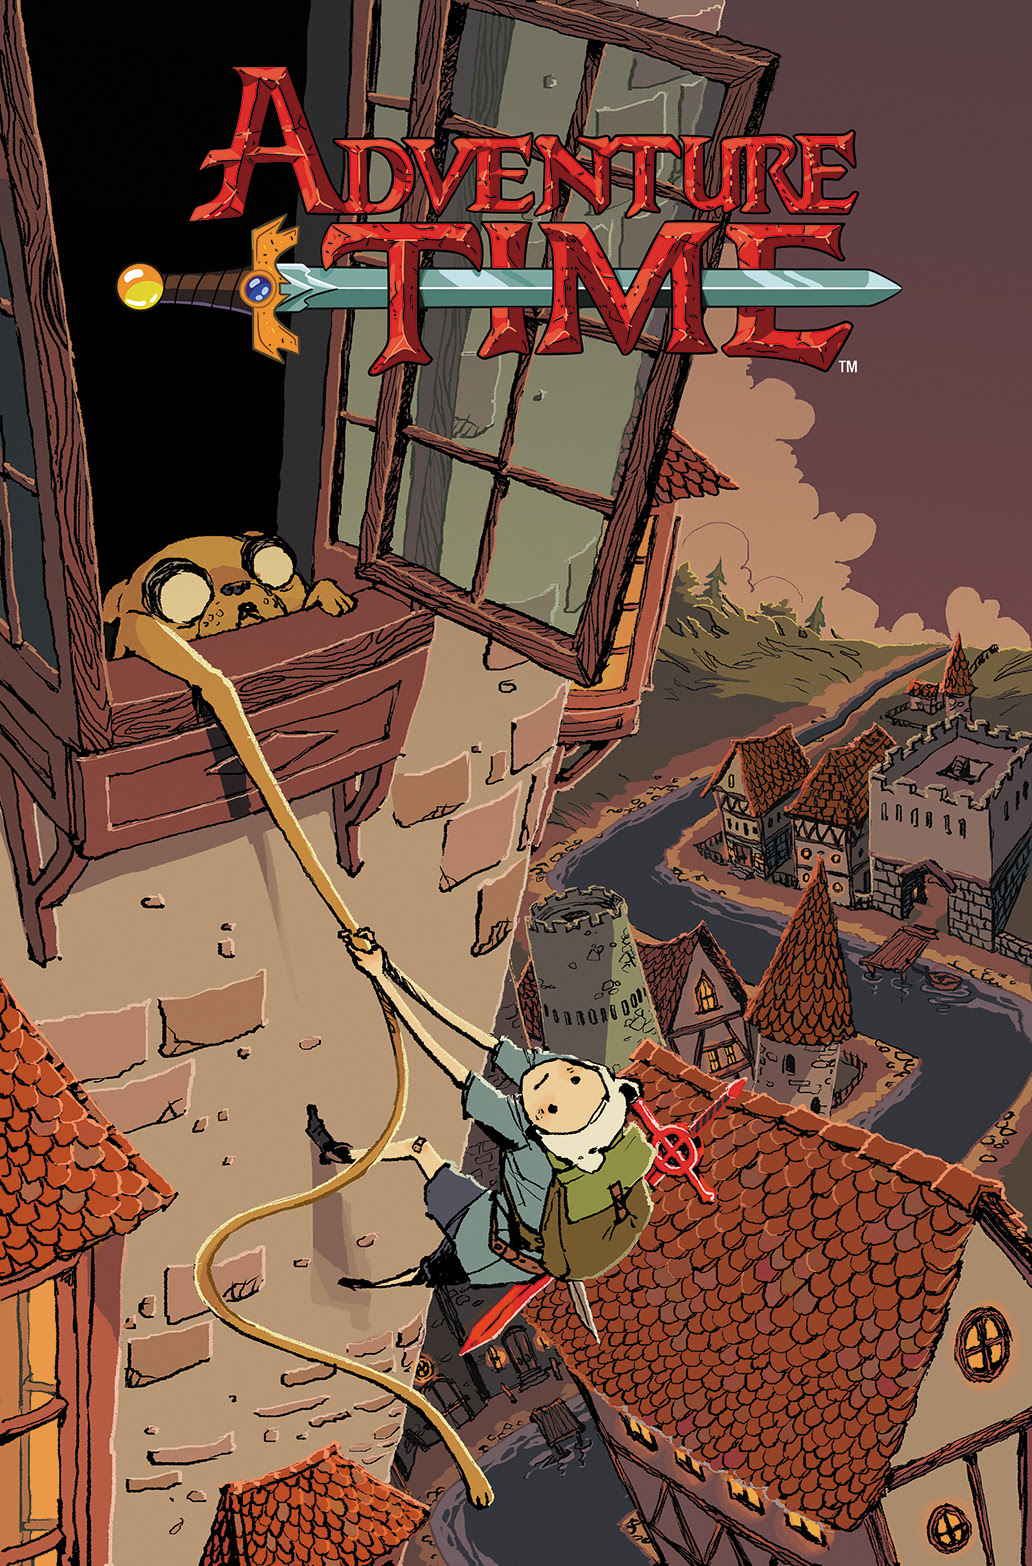 ADVENTURE TIME #28 Cover B by Kyla Vanderklugt